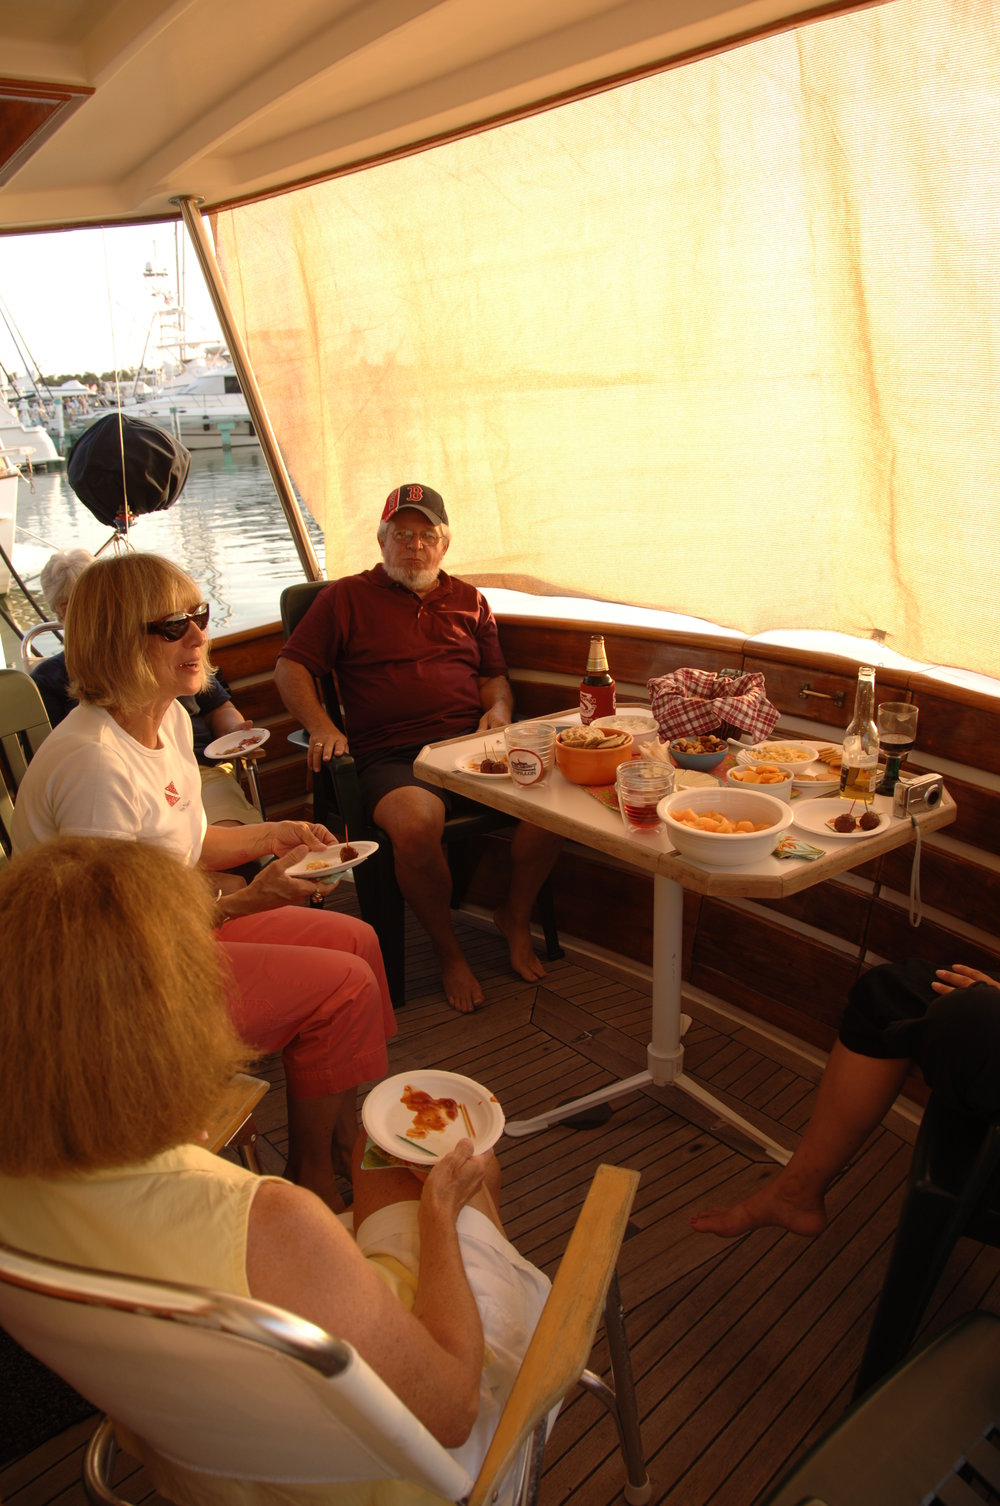 Sundown time aboard this Krogen 42. Everyone brings something to share and their own drink of choice. This is a great way to spend time together and look for the Green Flash.